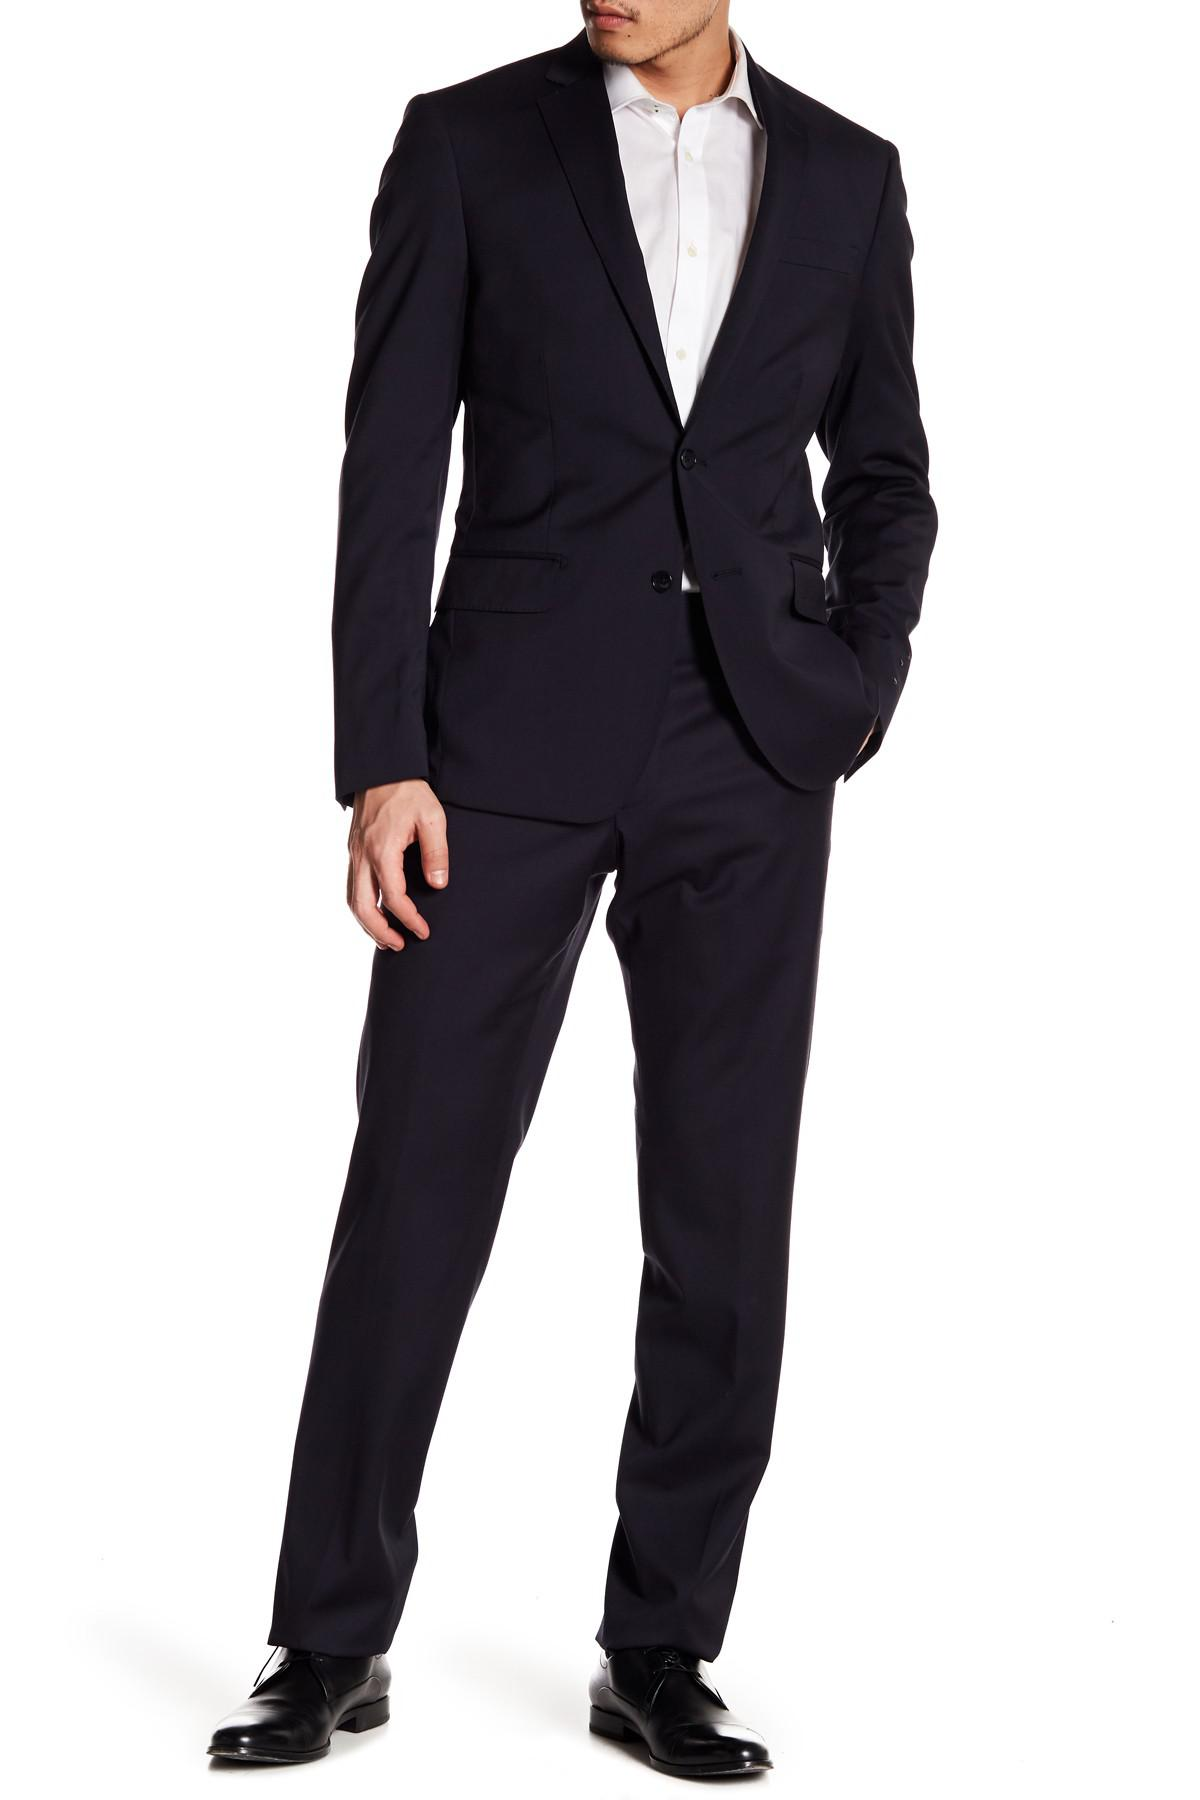 83b79f38002 Lyst - John W. Nordstrom Classic 2-piece Suit in Blue for Men